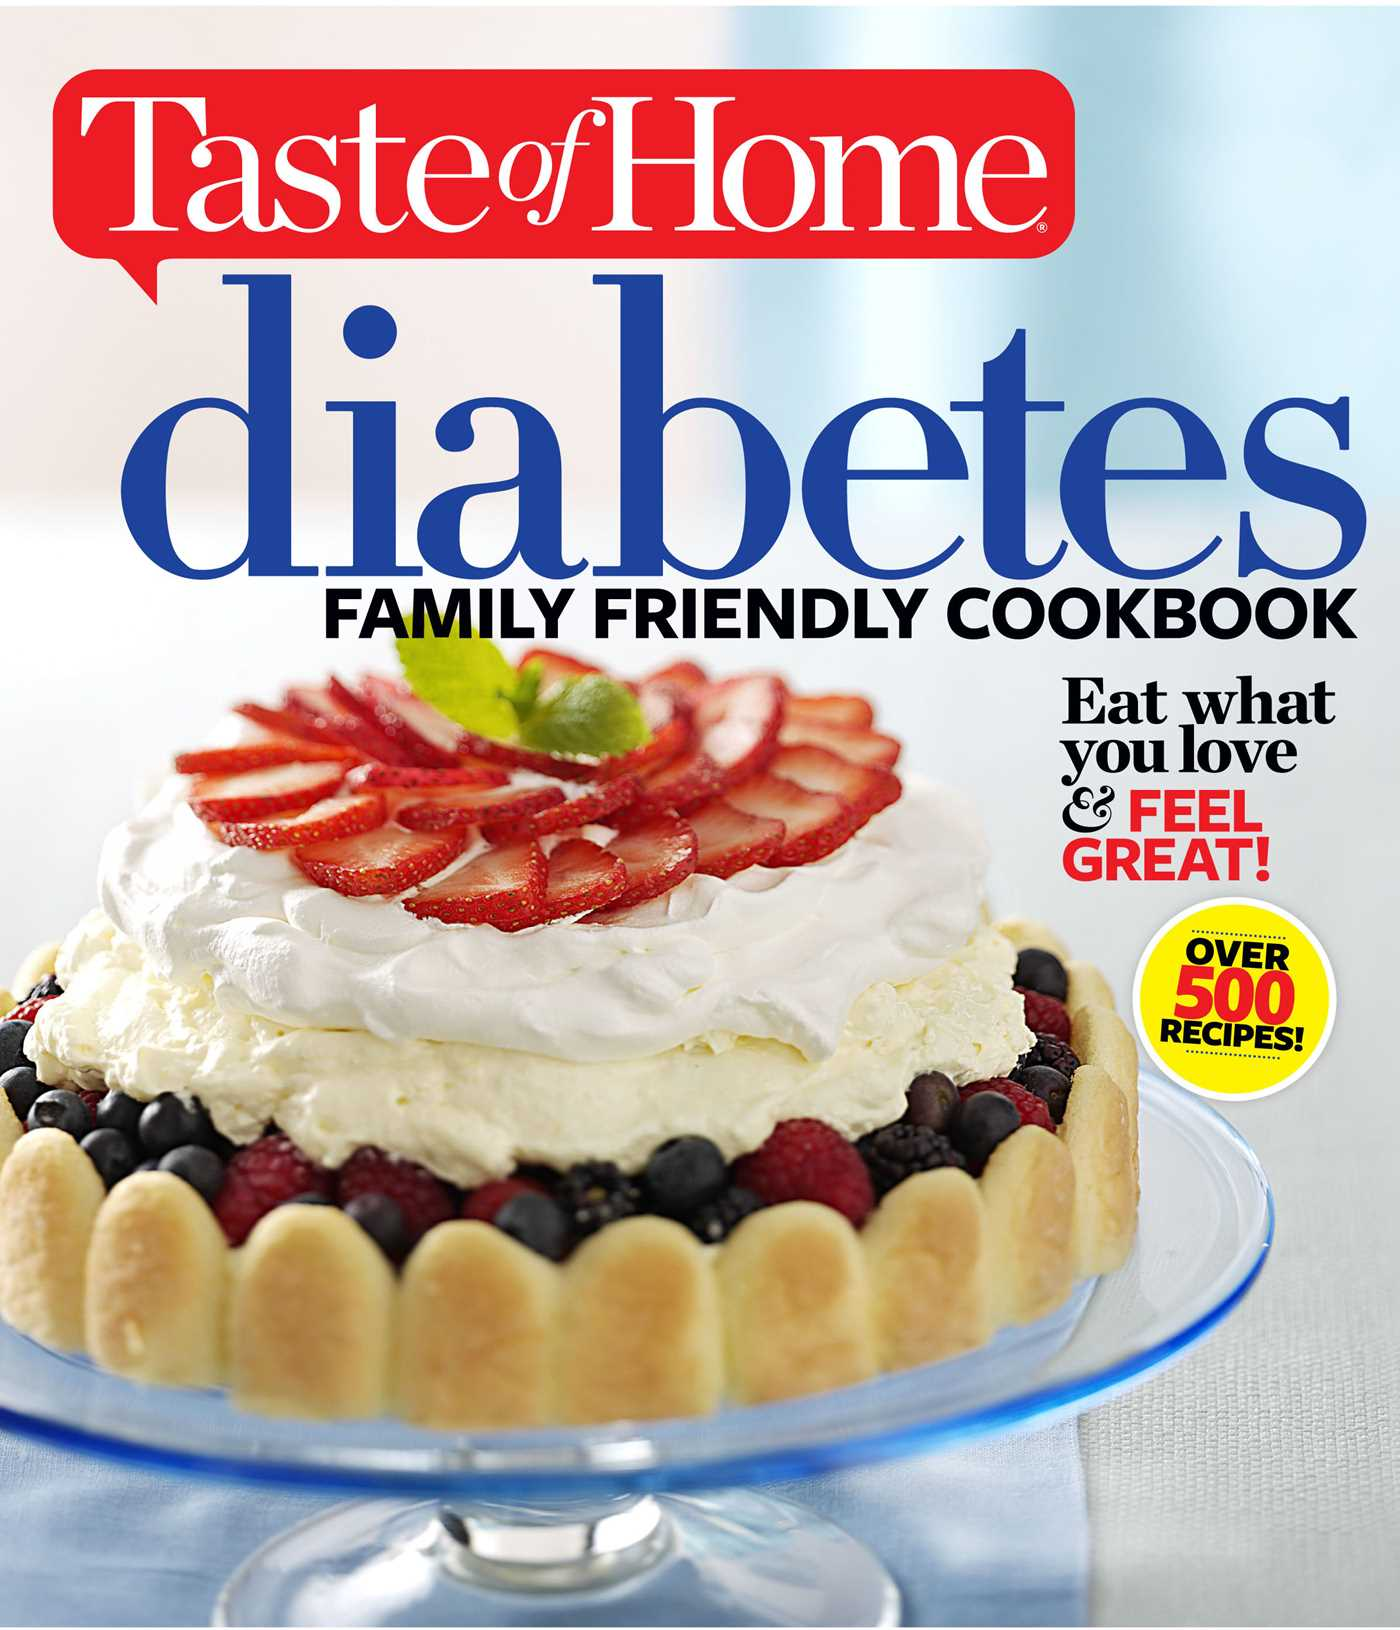 Taste of home diabetes family friendly cookbook 9781617652677 hr